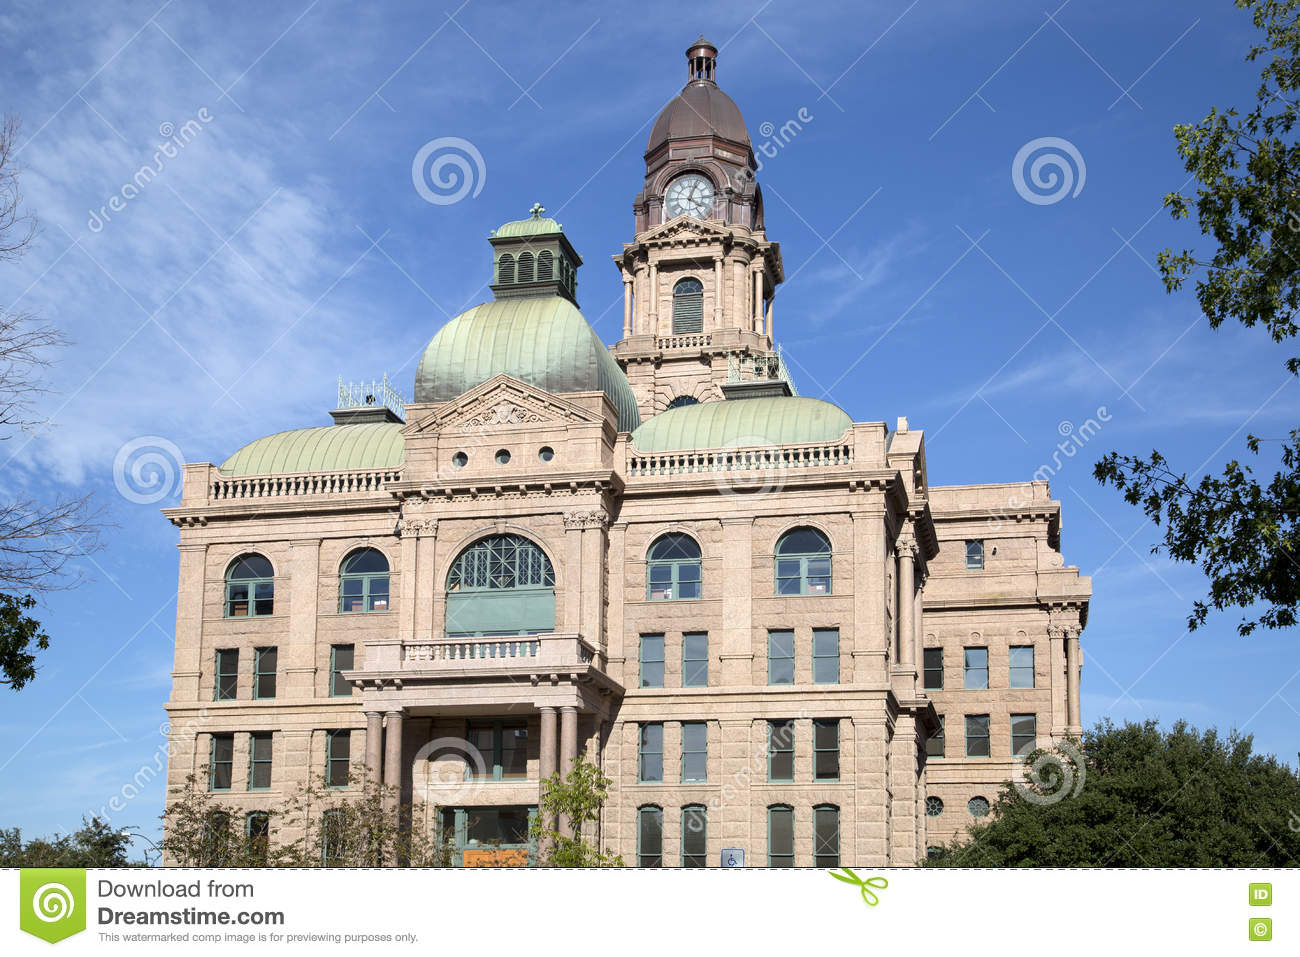 Tarrant County Courthouse in Fort Worth